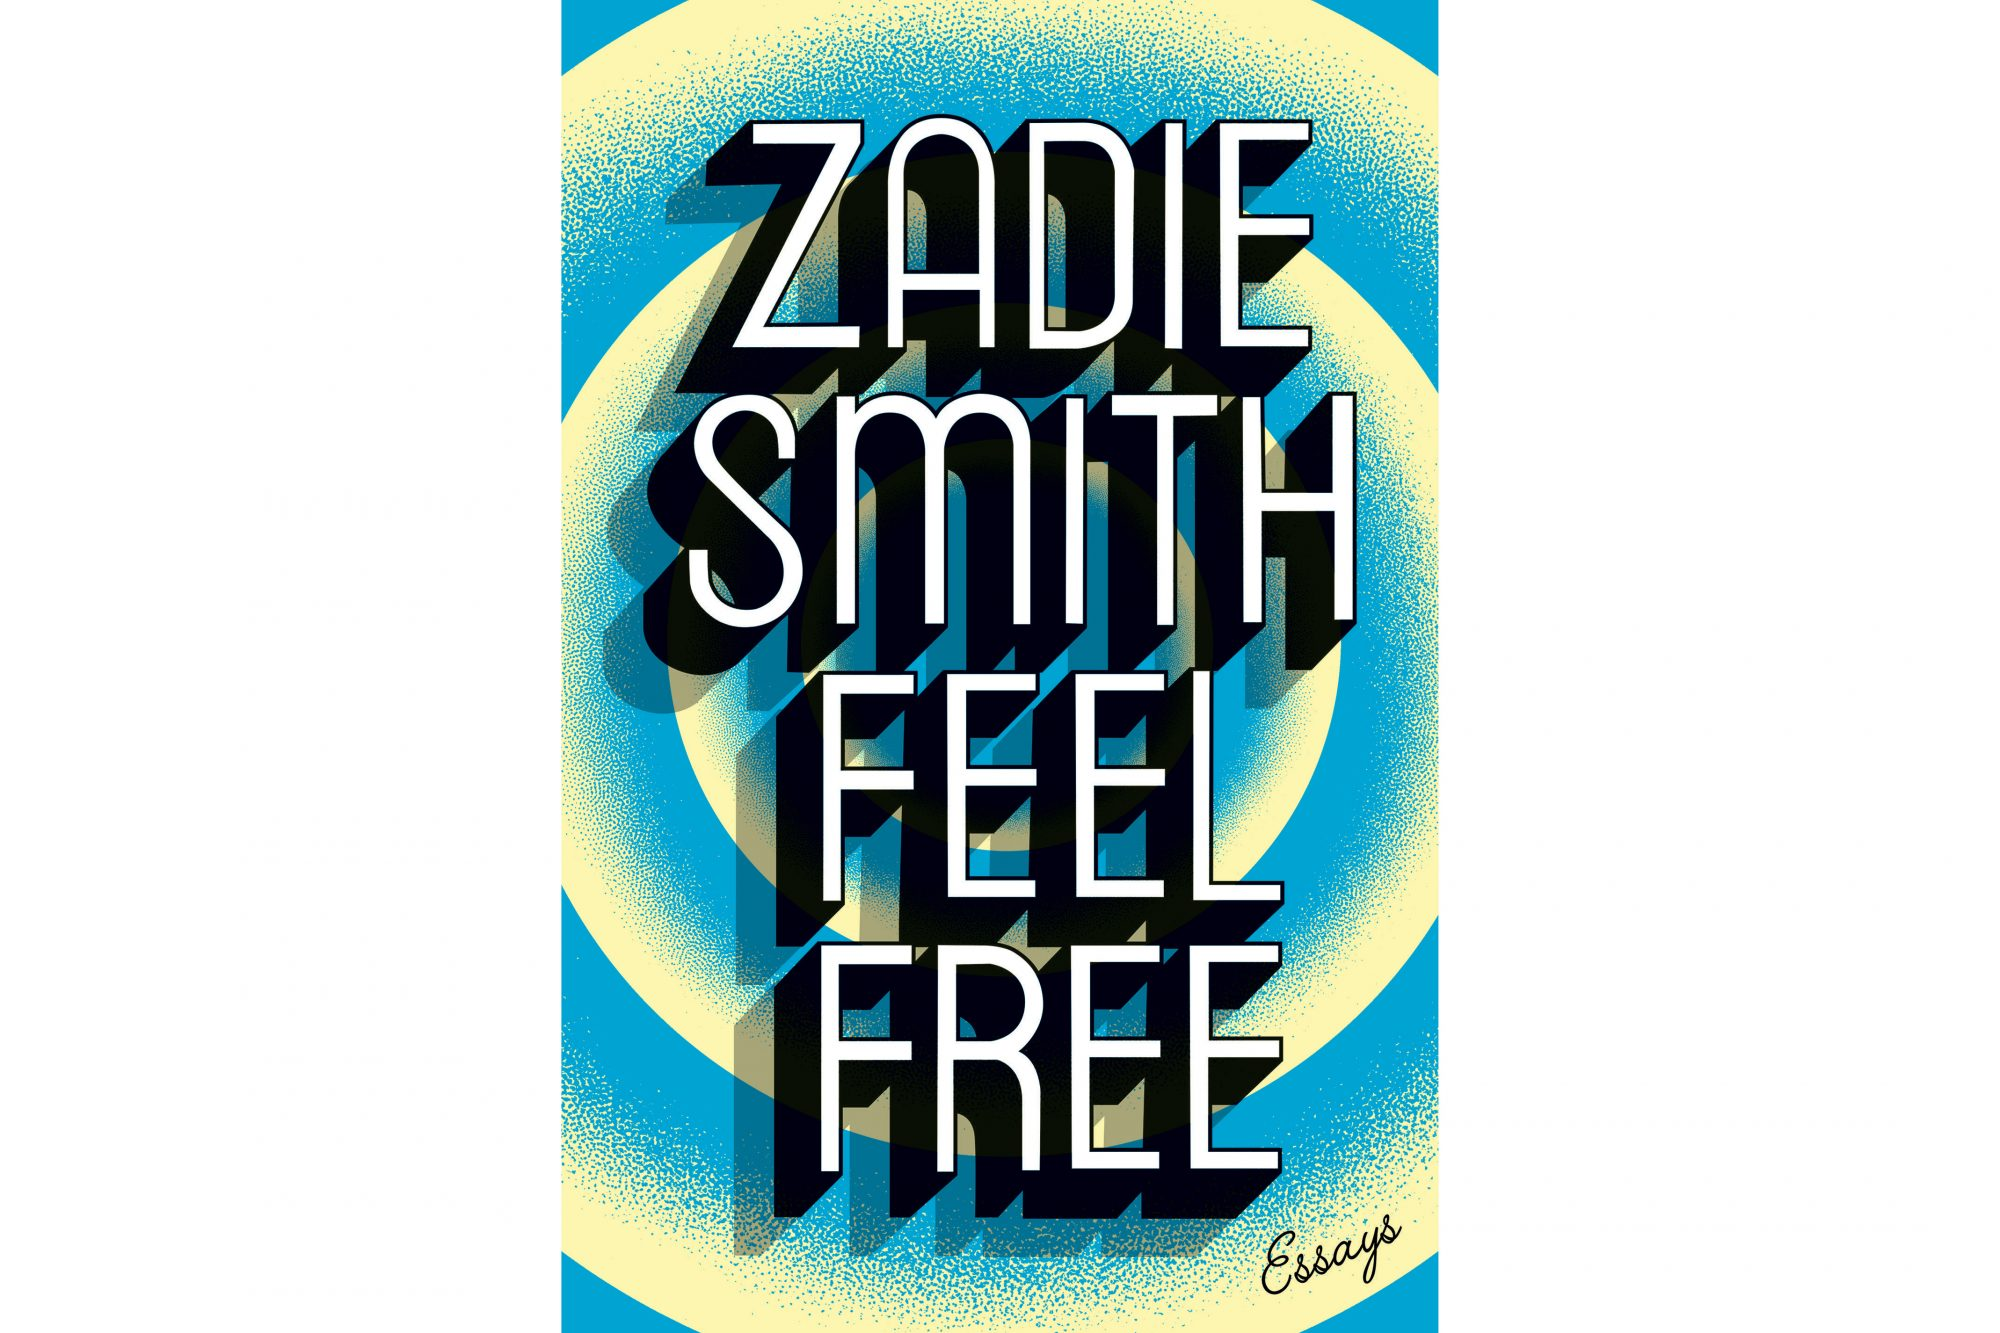 Feel Free, by Zadie Smith